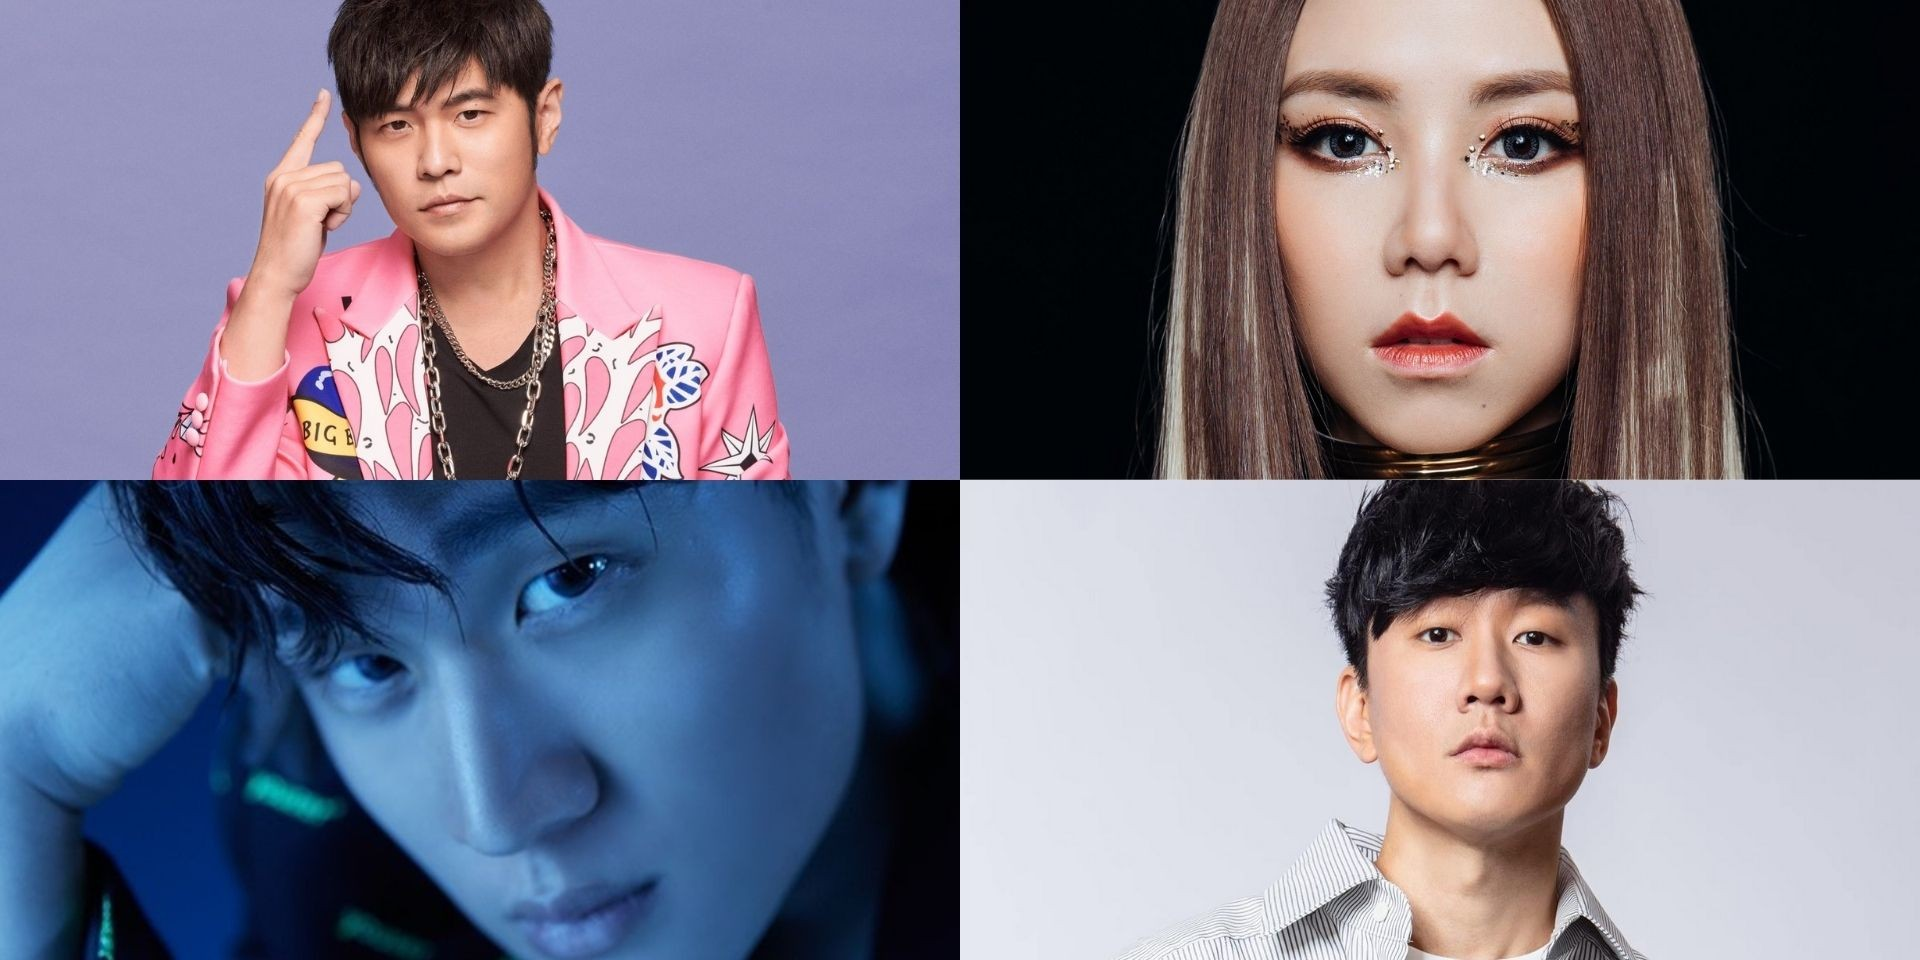 Jay Chou, G.E.M, JJ Lin, Eric Chou and more top Spotify 2020 Wrapped Taiwan's list of most-streamed artists